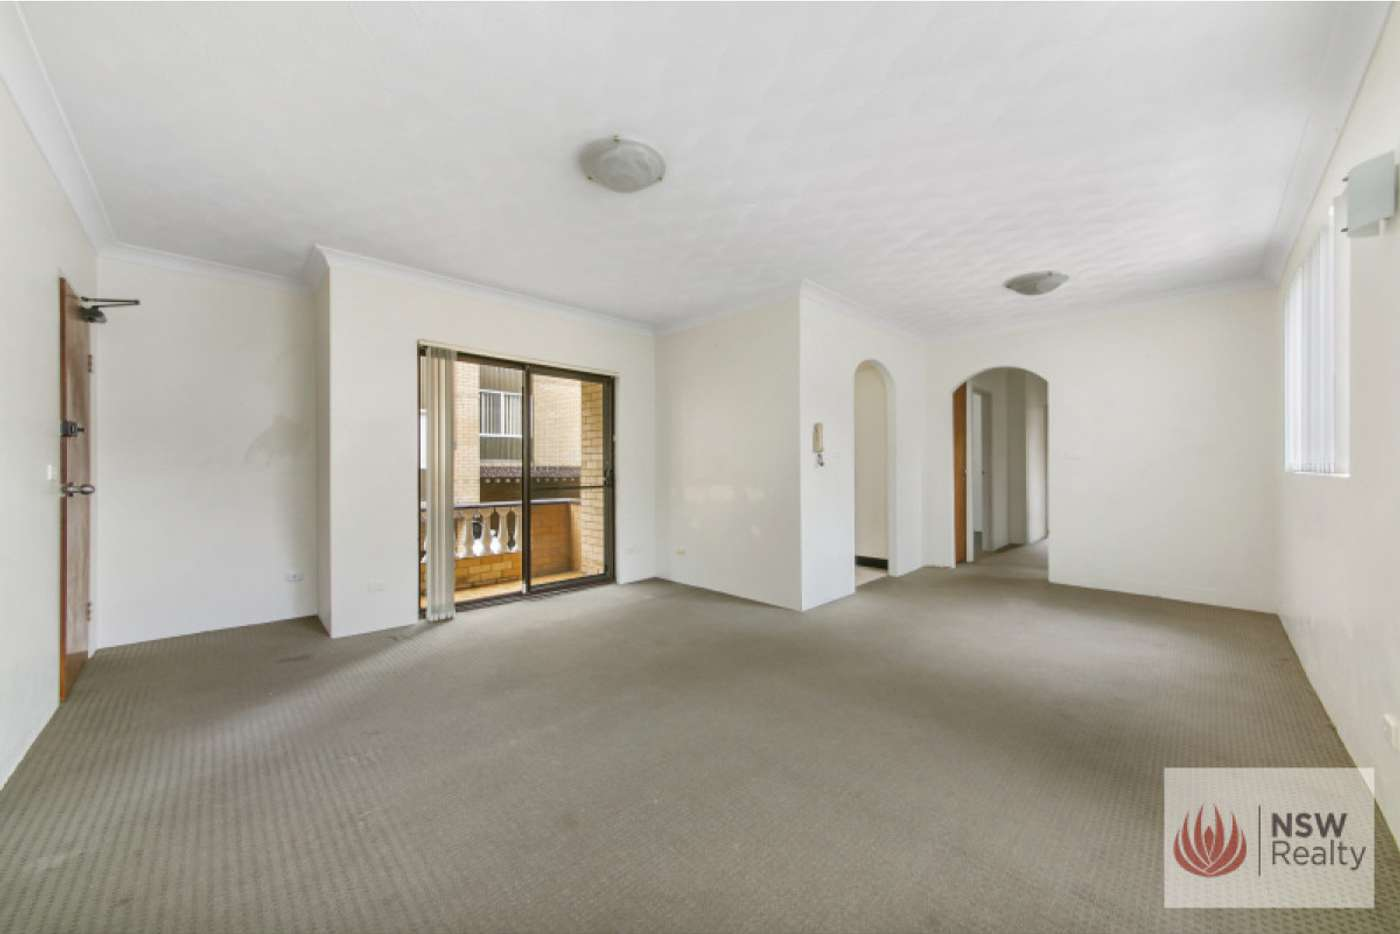 Main view of Homely apartment listing, 1/8 Queens Avenue, Parramatta NSW 2150